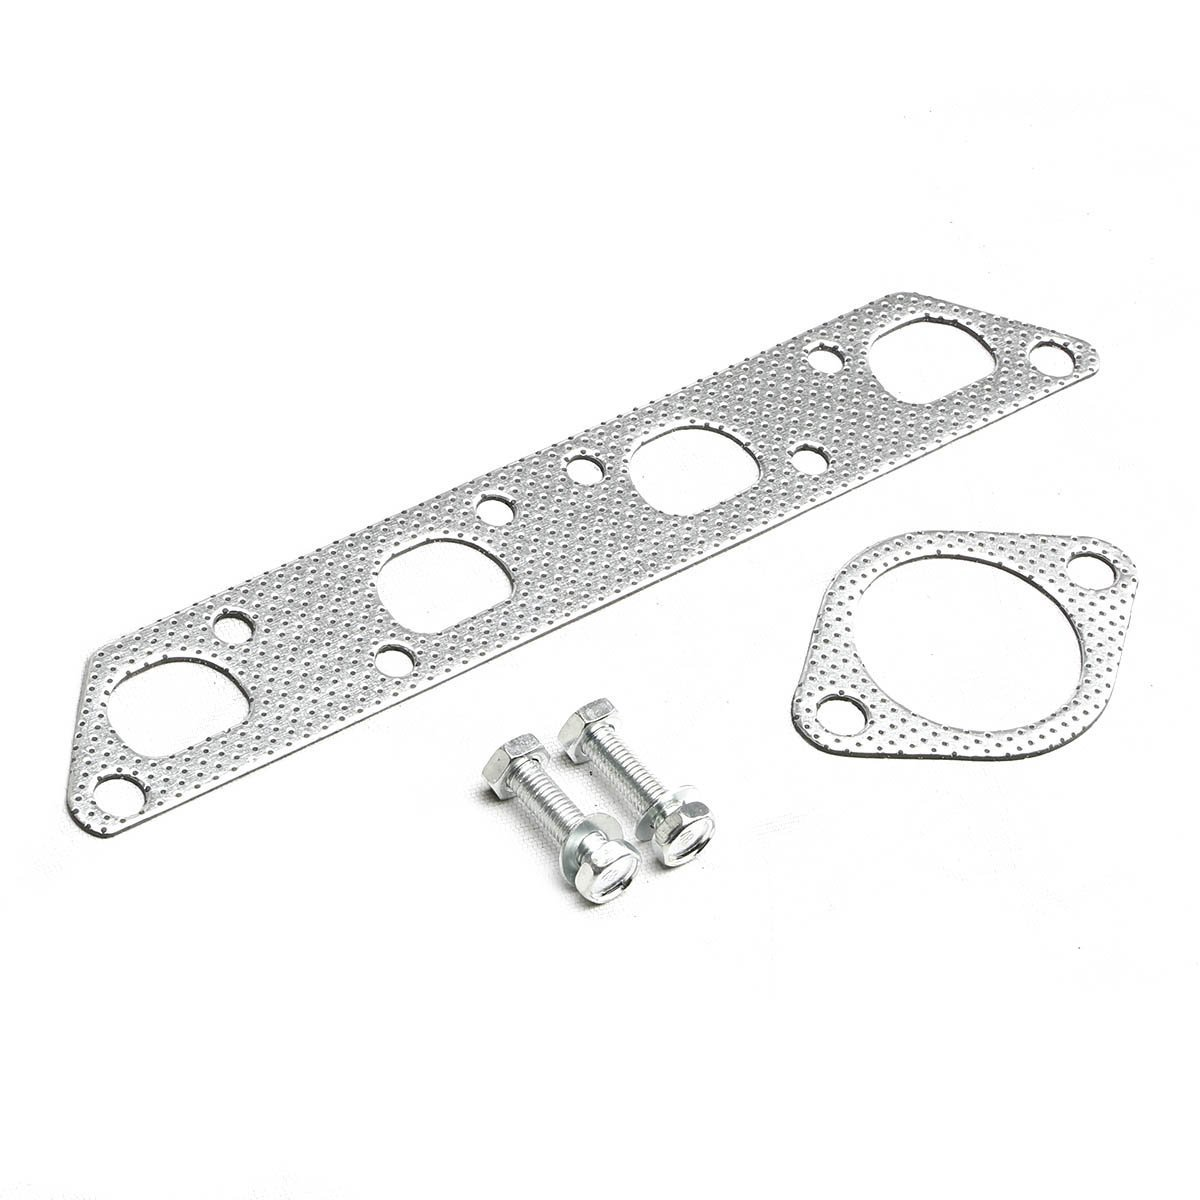 02 08 Mini Cooper Racing Exhaust Manifold Header